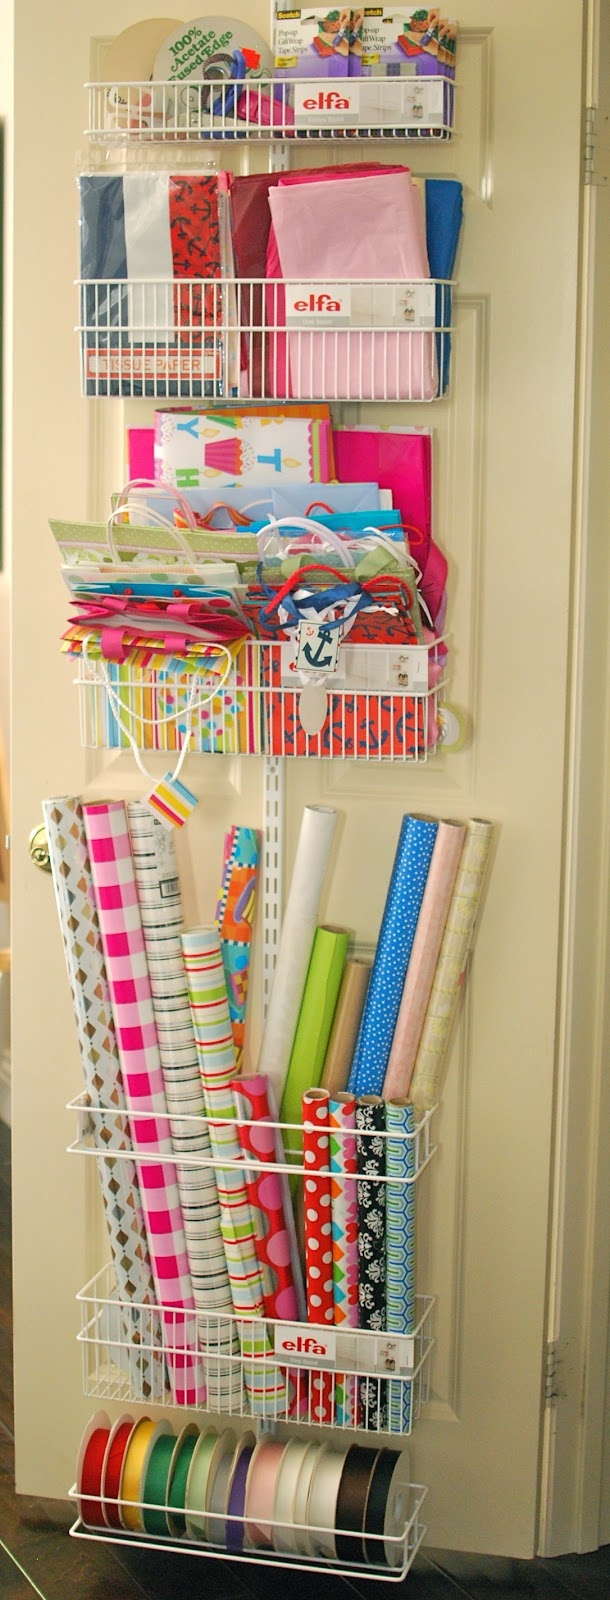 It's Ella's World Now: Organizing- Wrapping Station